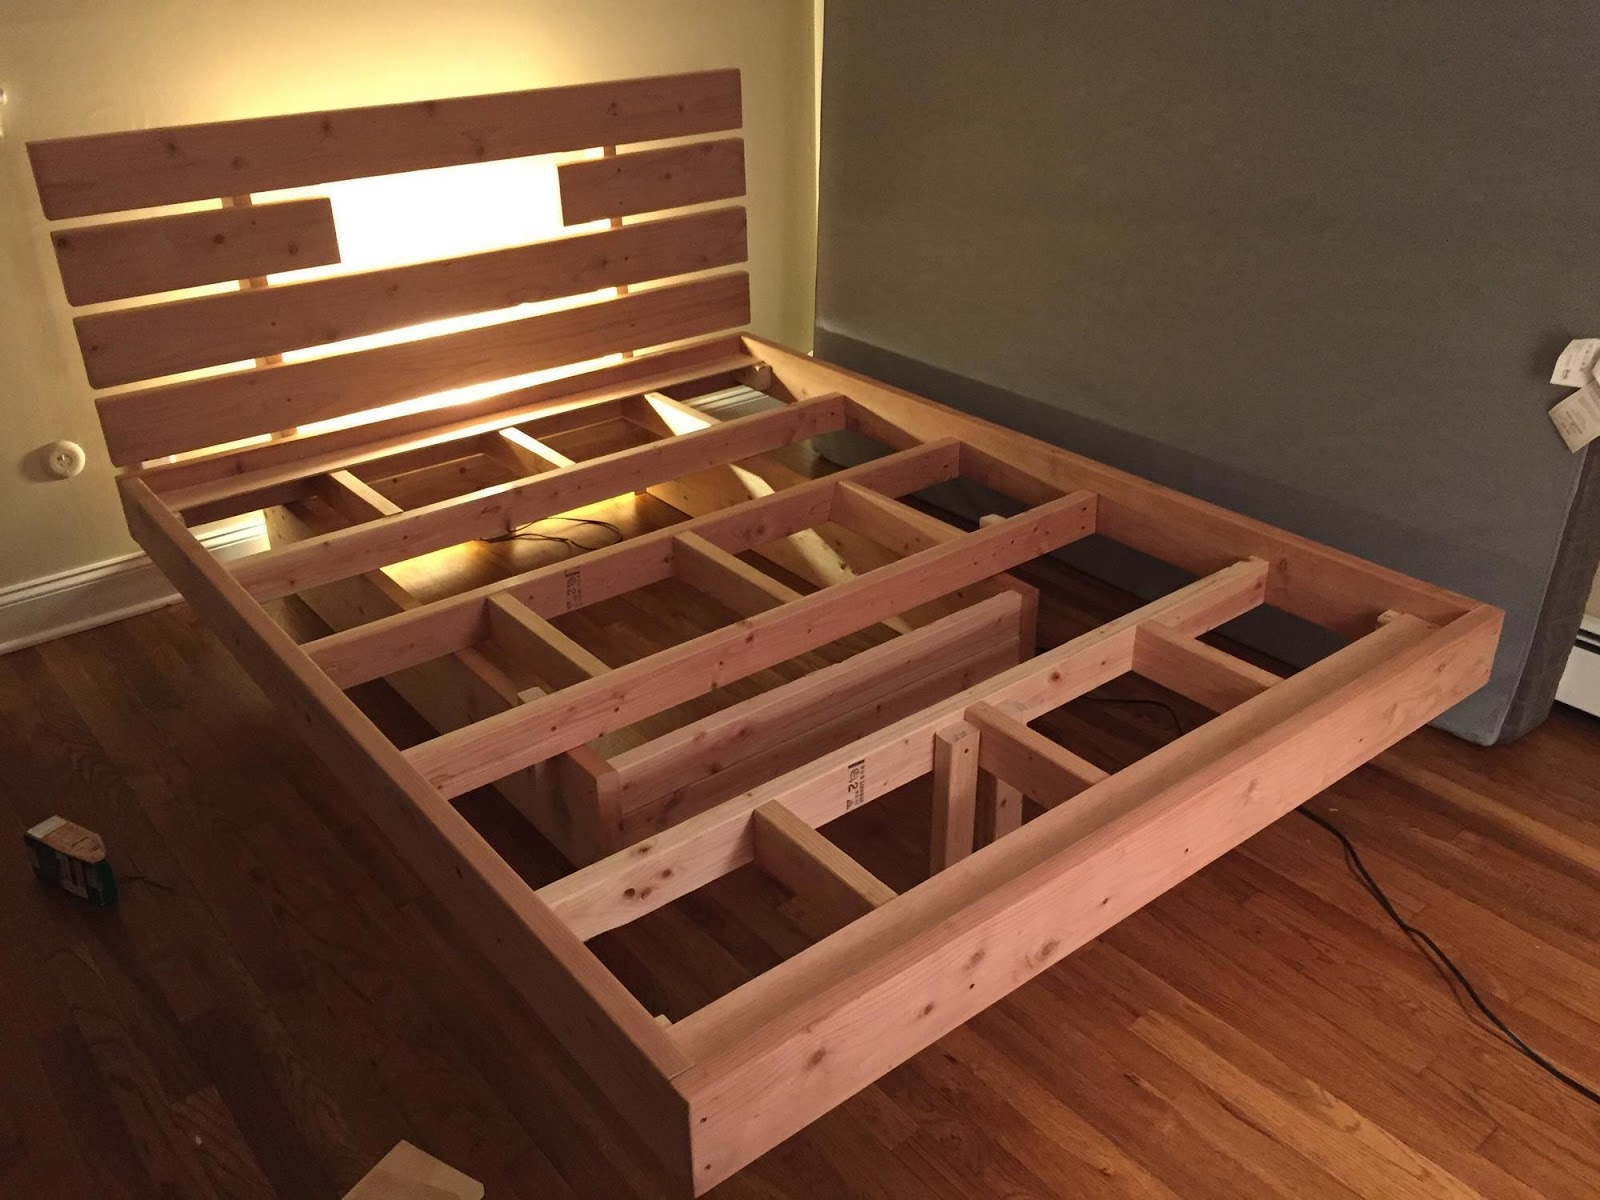 diy floating bed project